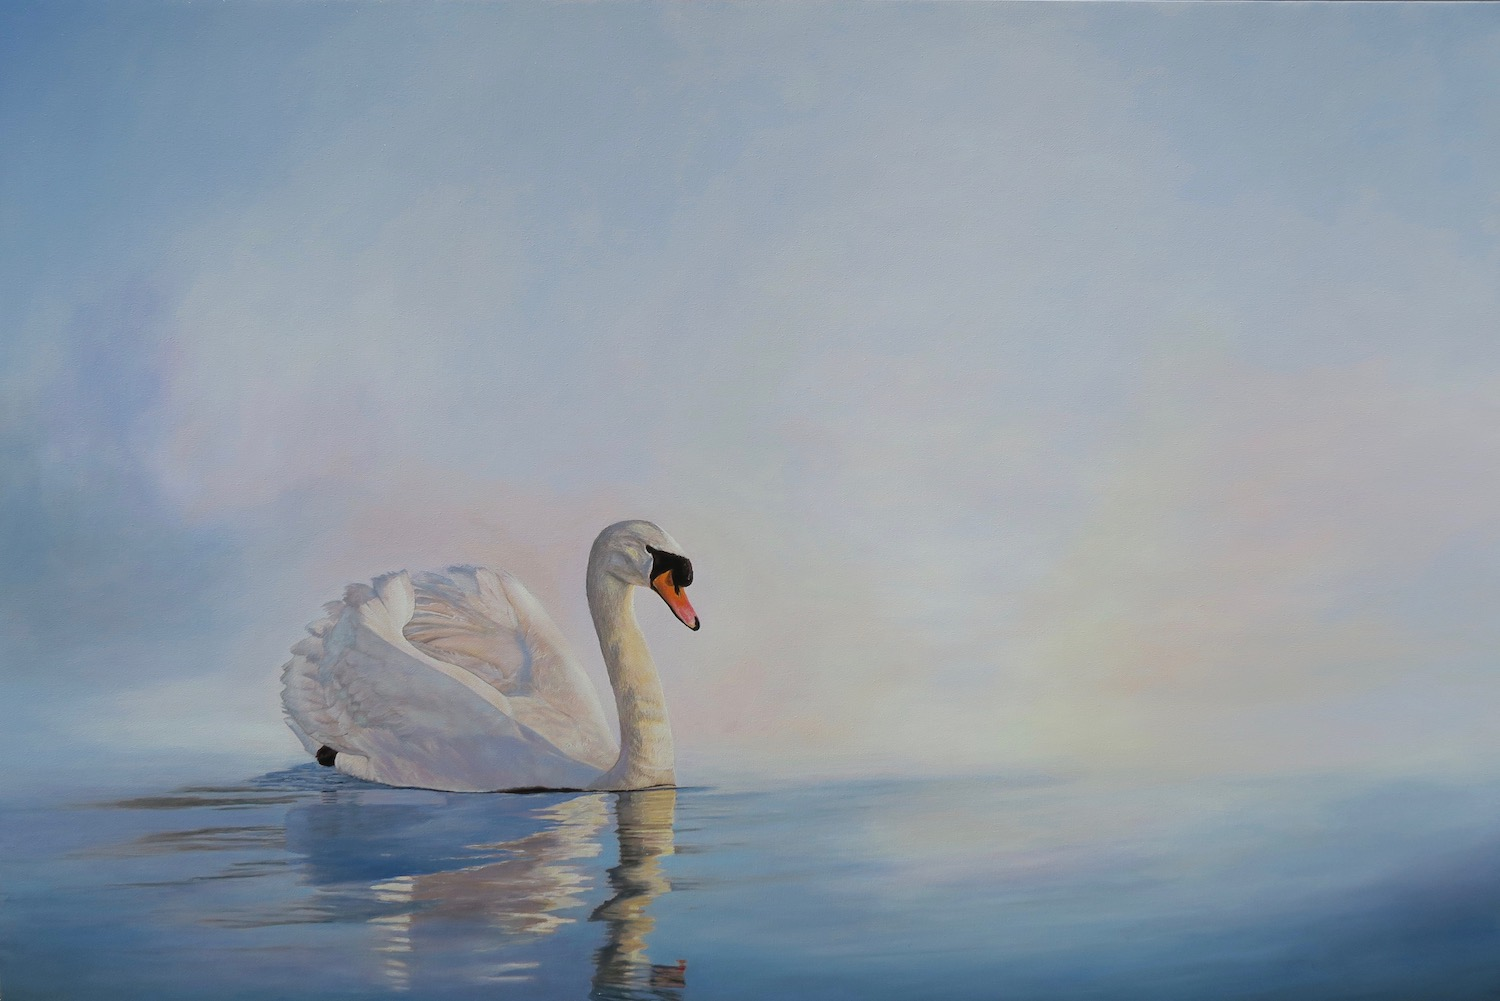 Painting of Swan 1 by Niko Dujmovic